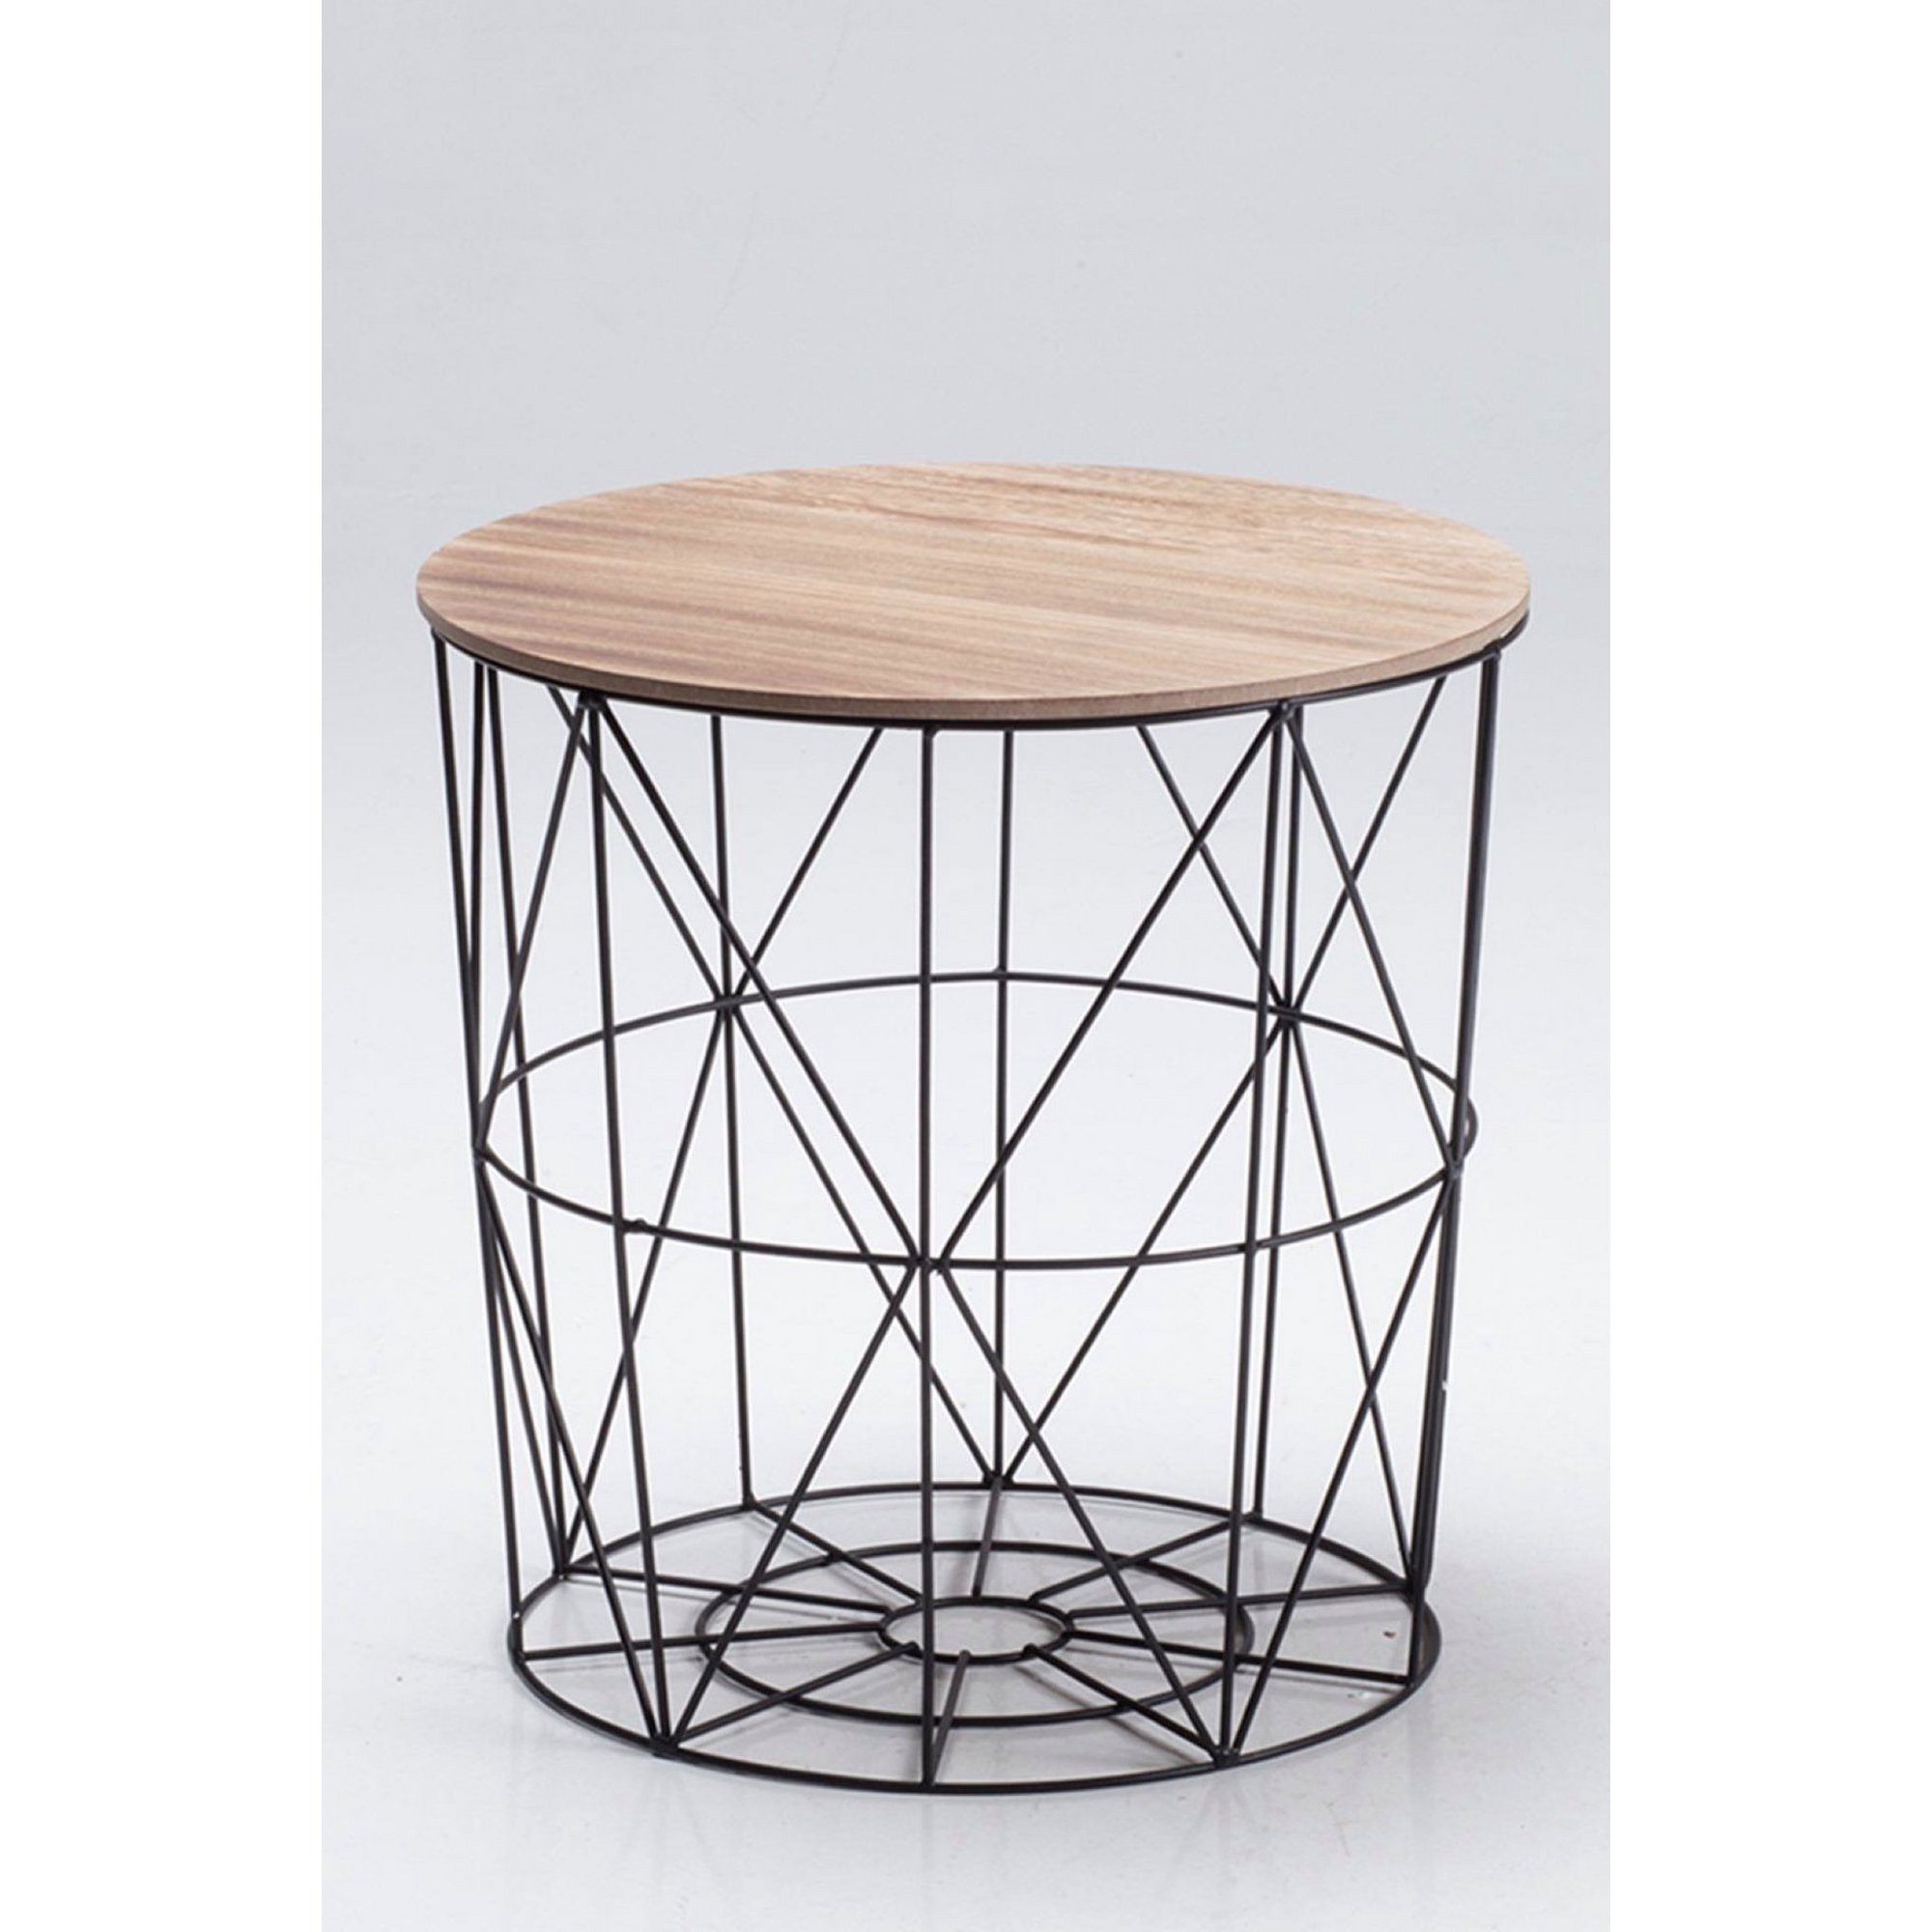 Image of Cosmo Black Cage Table with Oak Finish Top